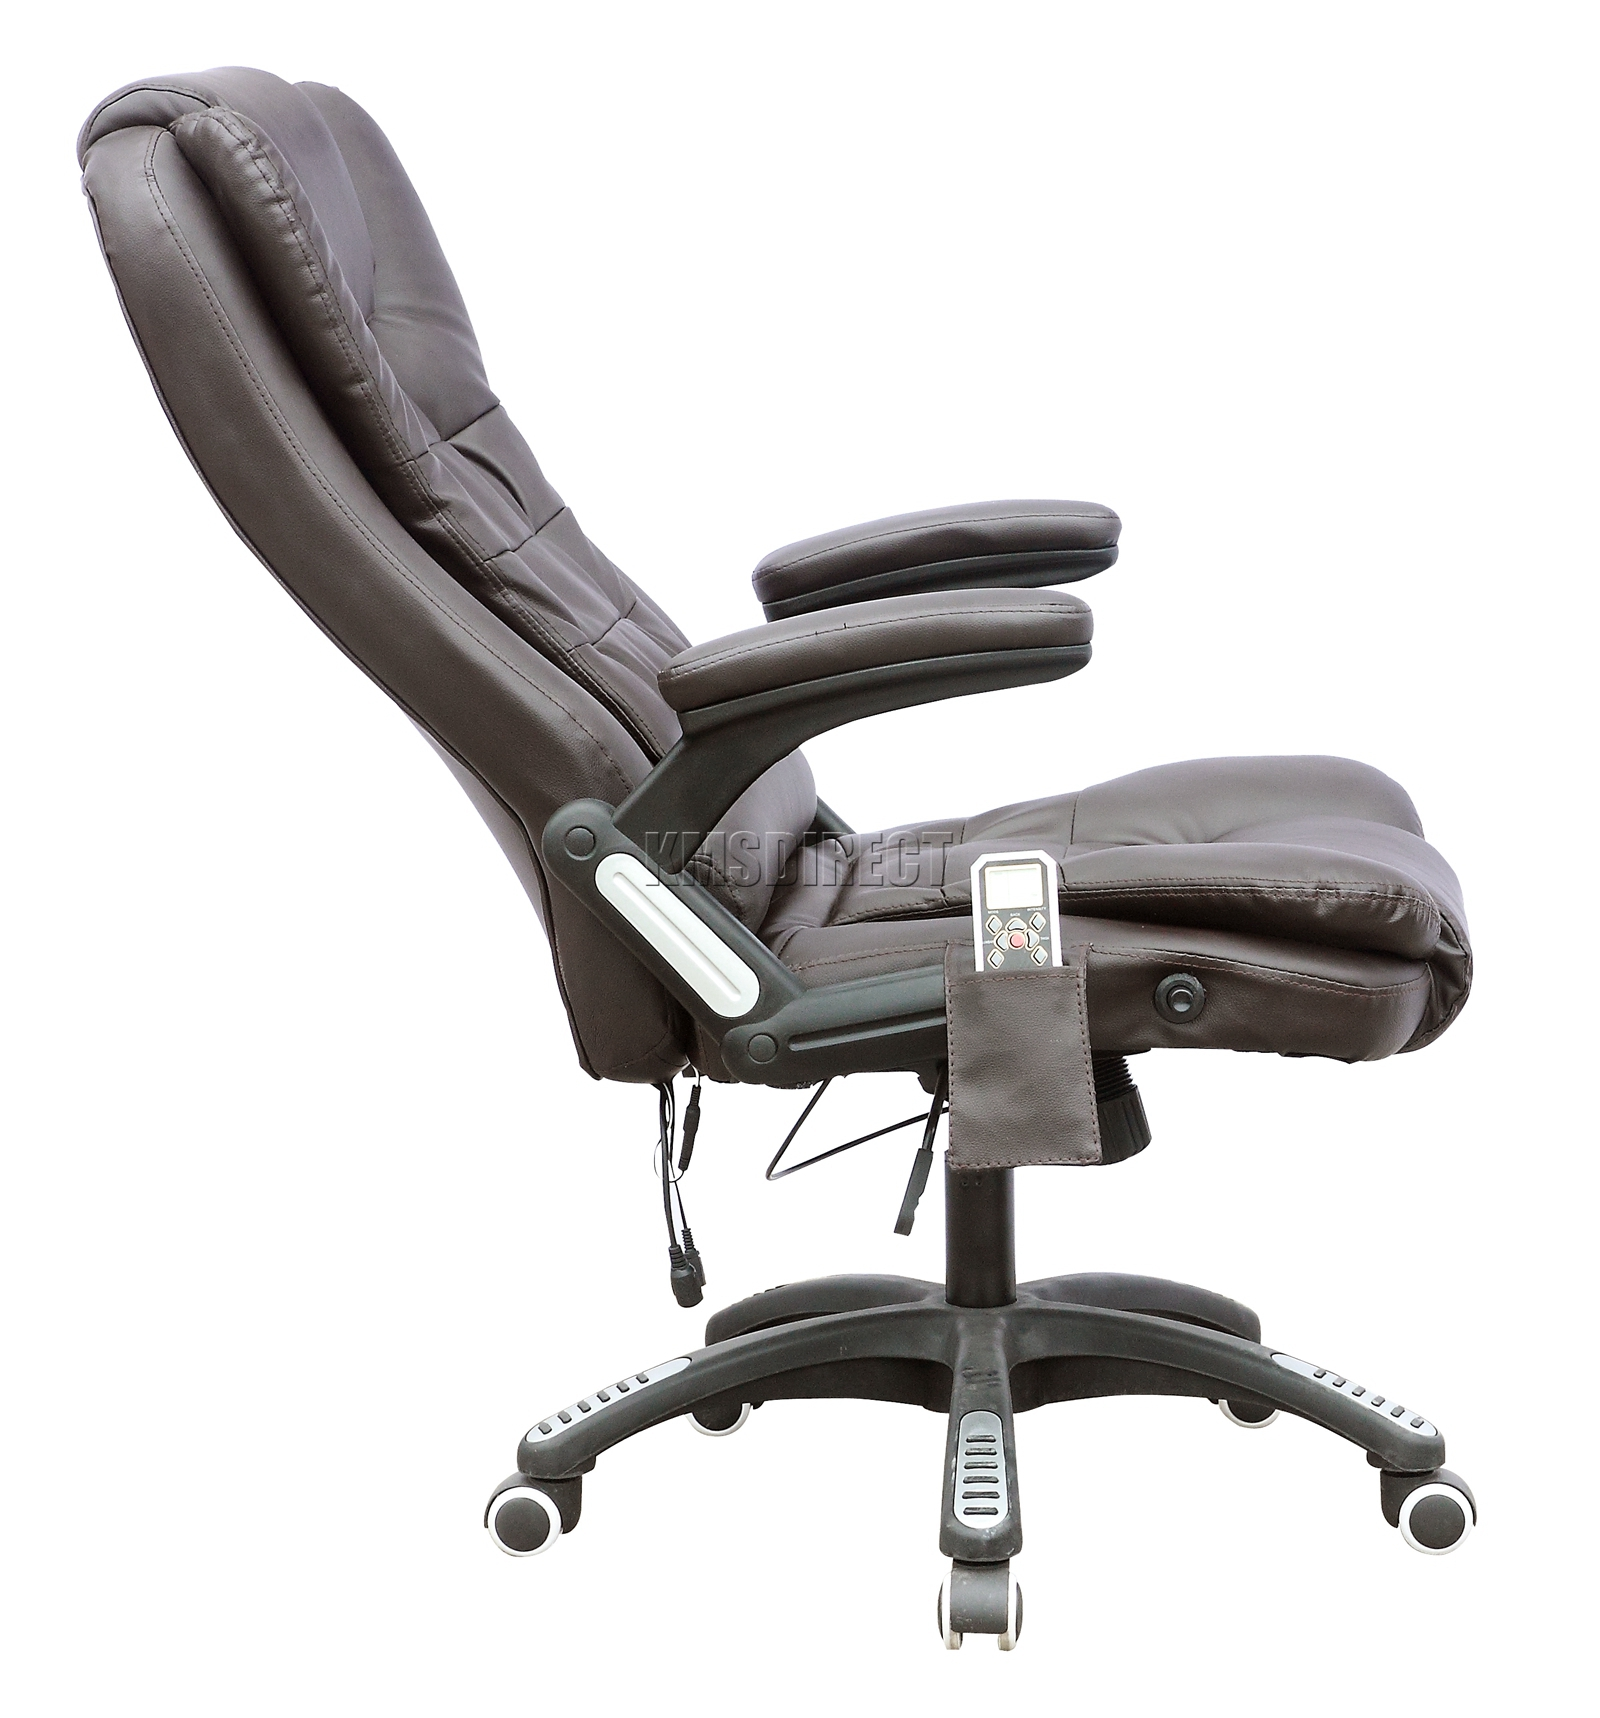 chairs pain ergonomic back office size reclining chair with executive footrest for original recliner